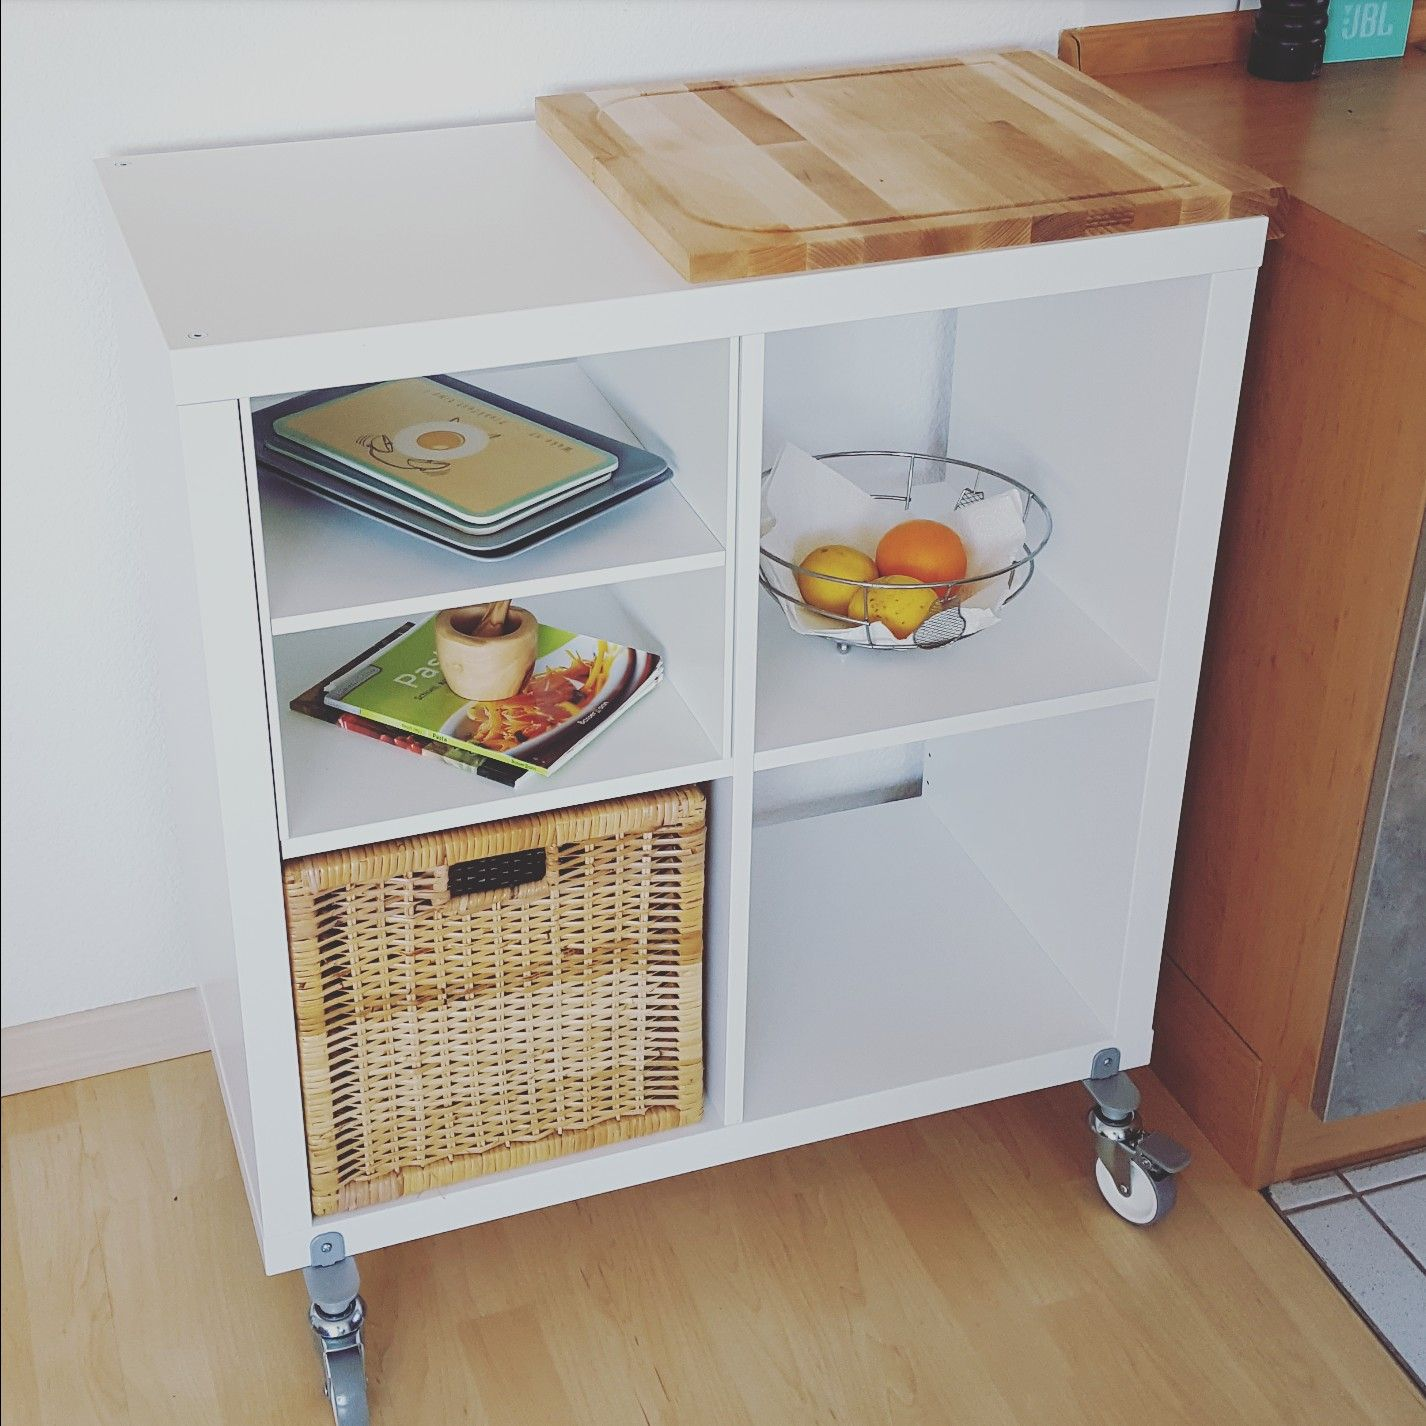 Ikea Küche Wagen Ikea Hack Kallax As A Kitchen Food Cart Ikea Ikeahack